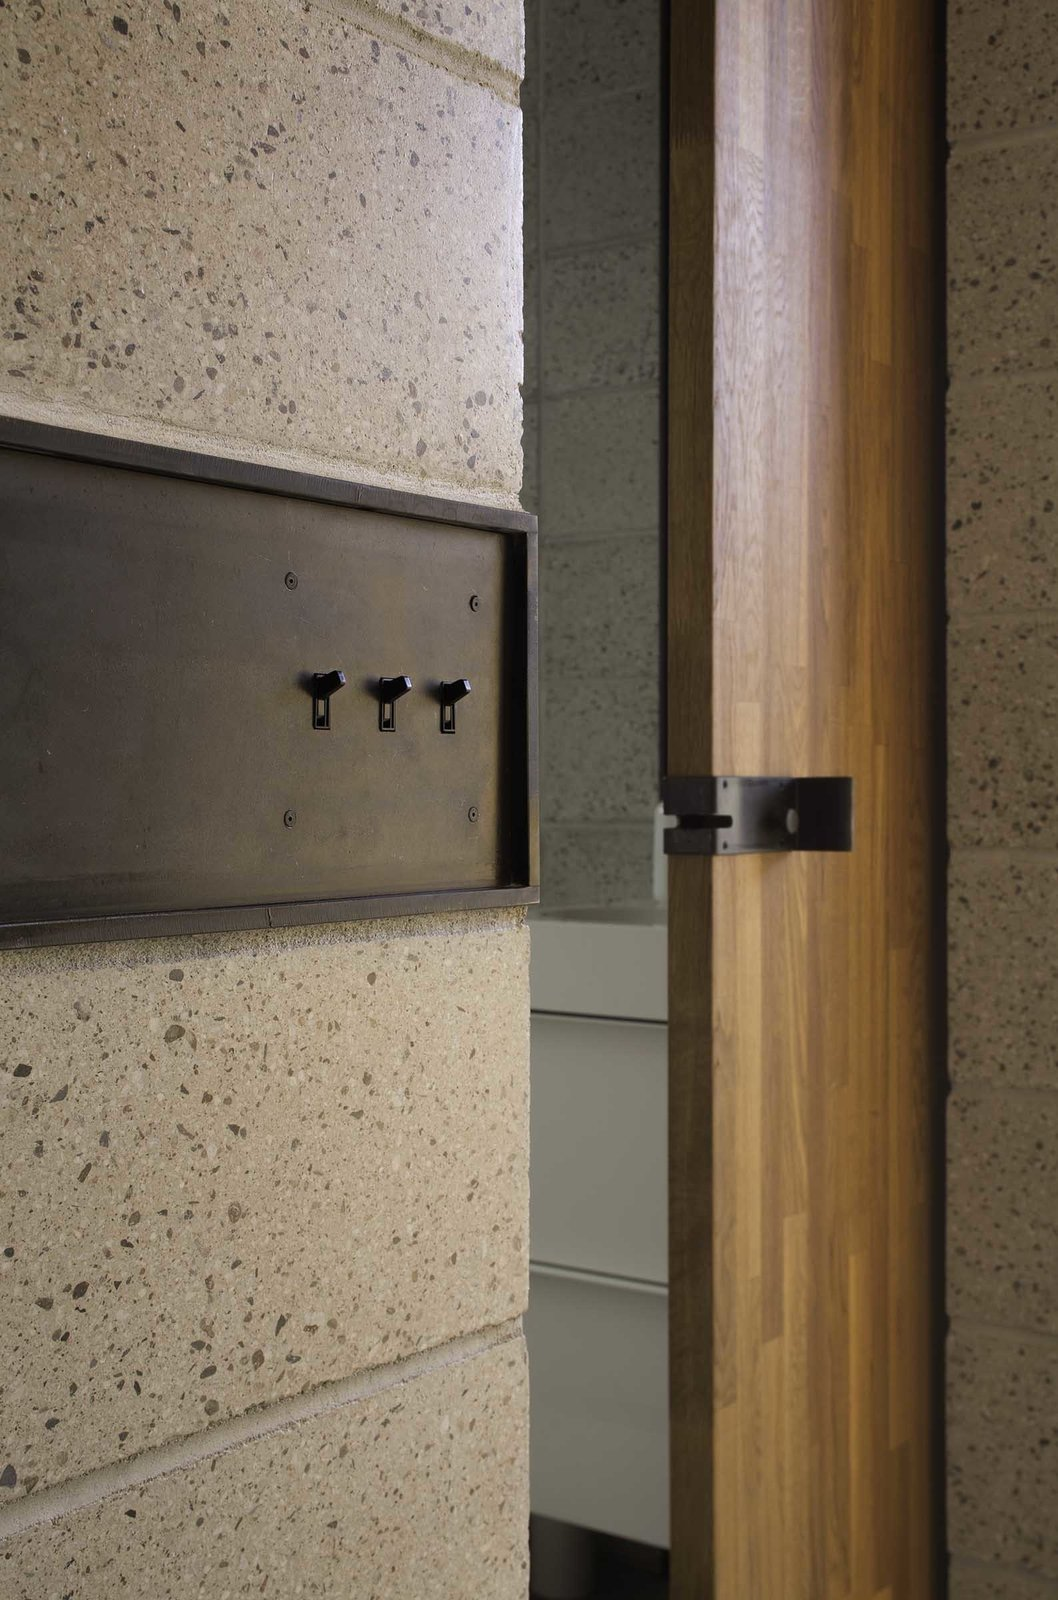 Cabinet Covers For Rentals 8 Creative Ways To Let The Little Details Shine Dwell